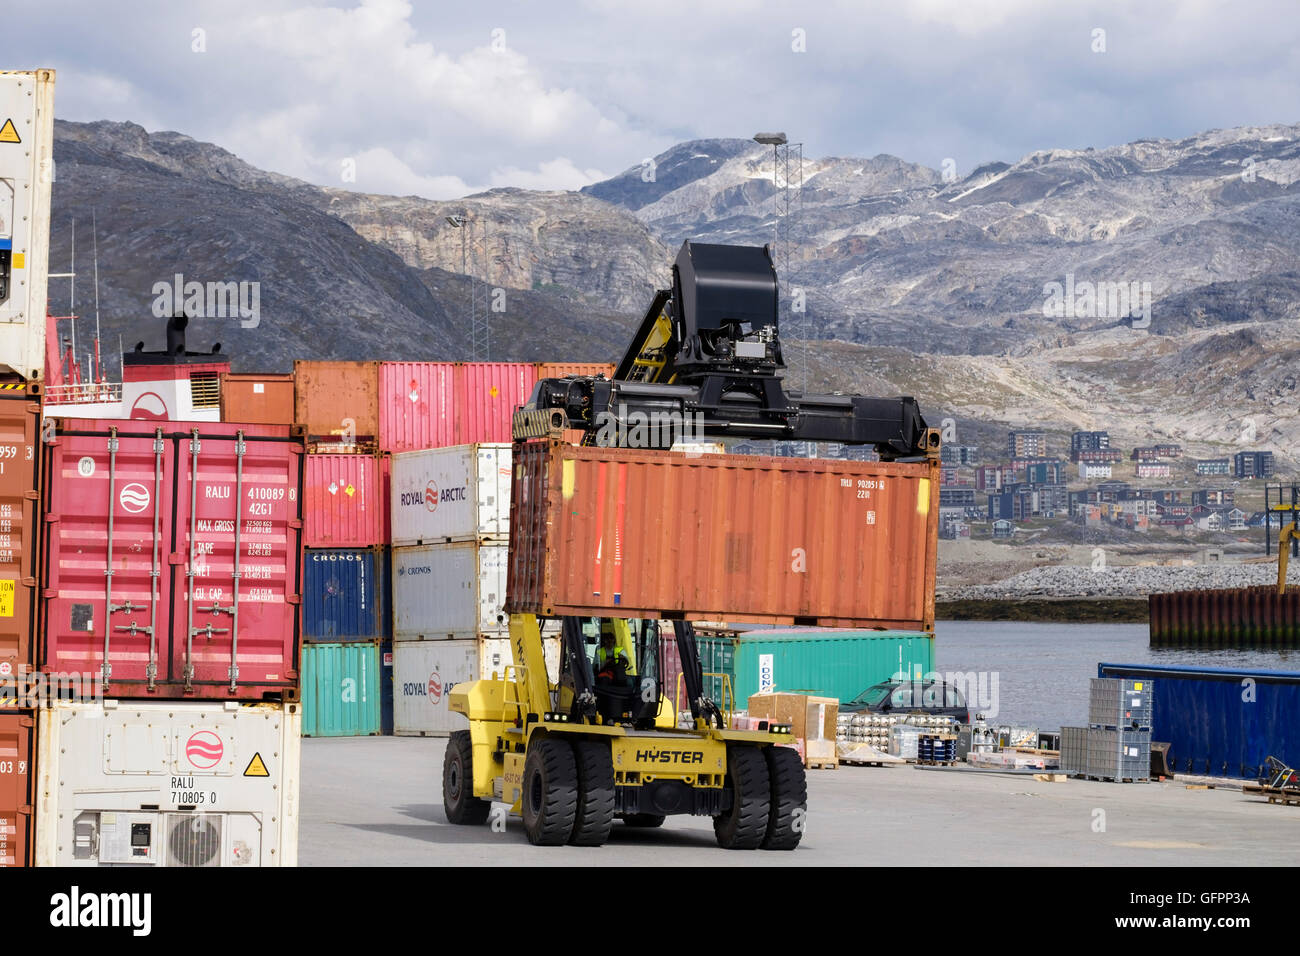 Hydraulic Hyster electric forklift truck lifting freight shipping container in port. Atlantic Harbour Nuuk Sermersooq West Greenland Stock Photo